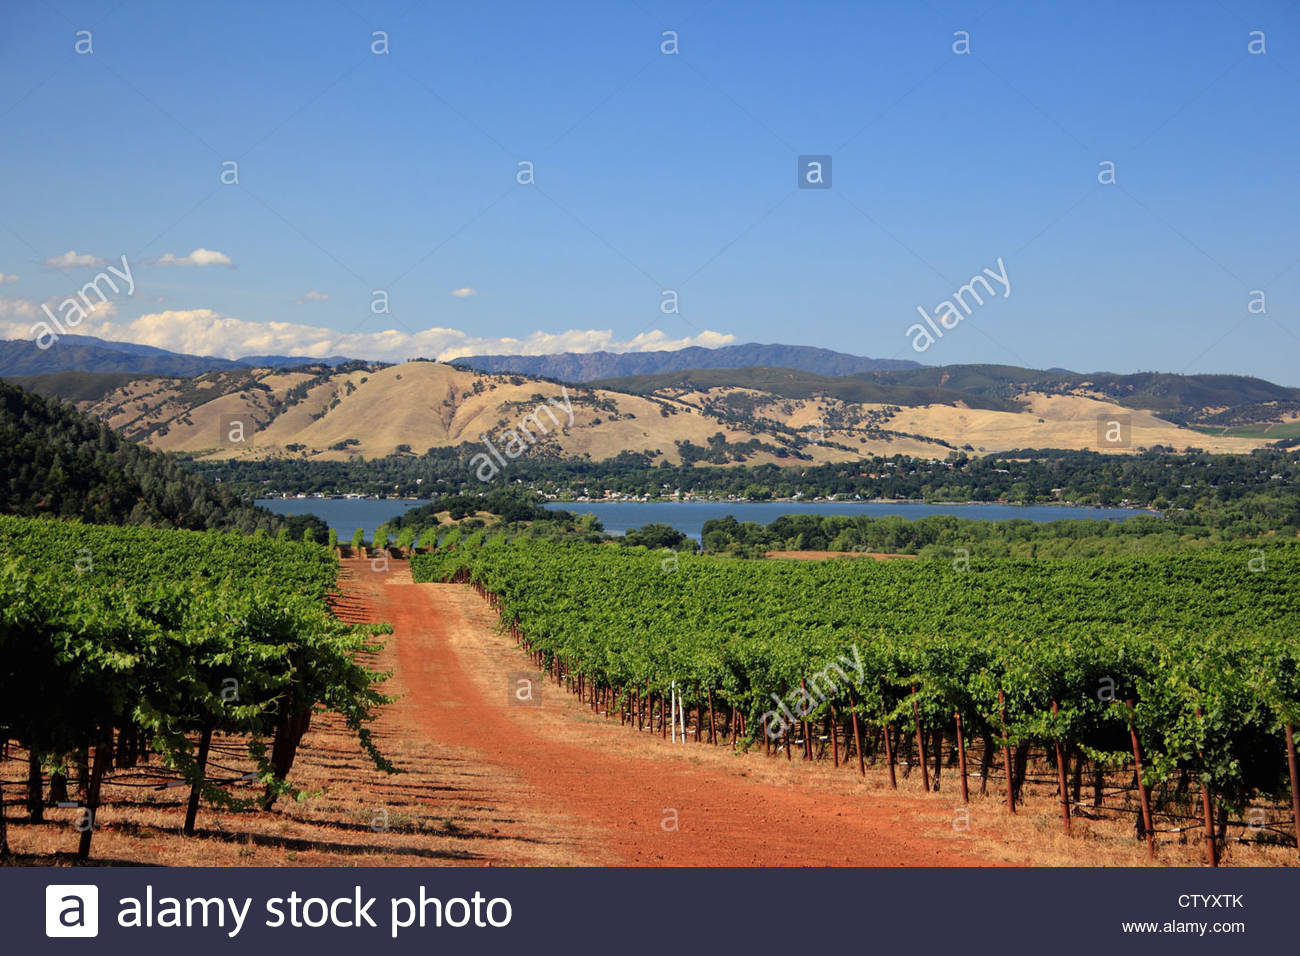 Dirt road in rural vineyard - Stock Image